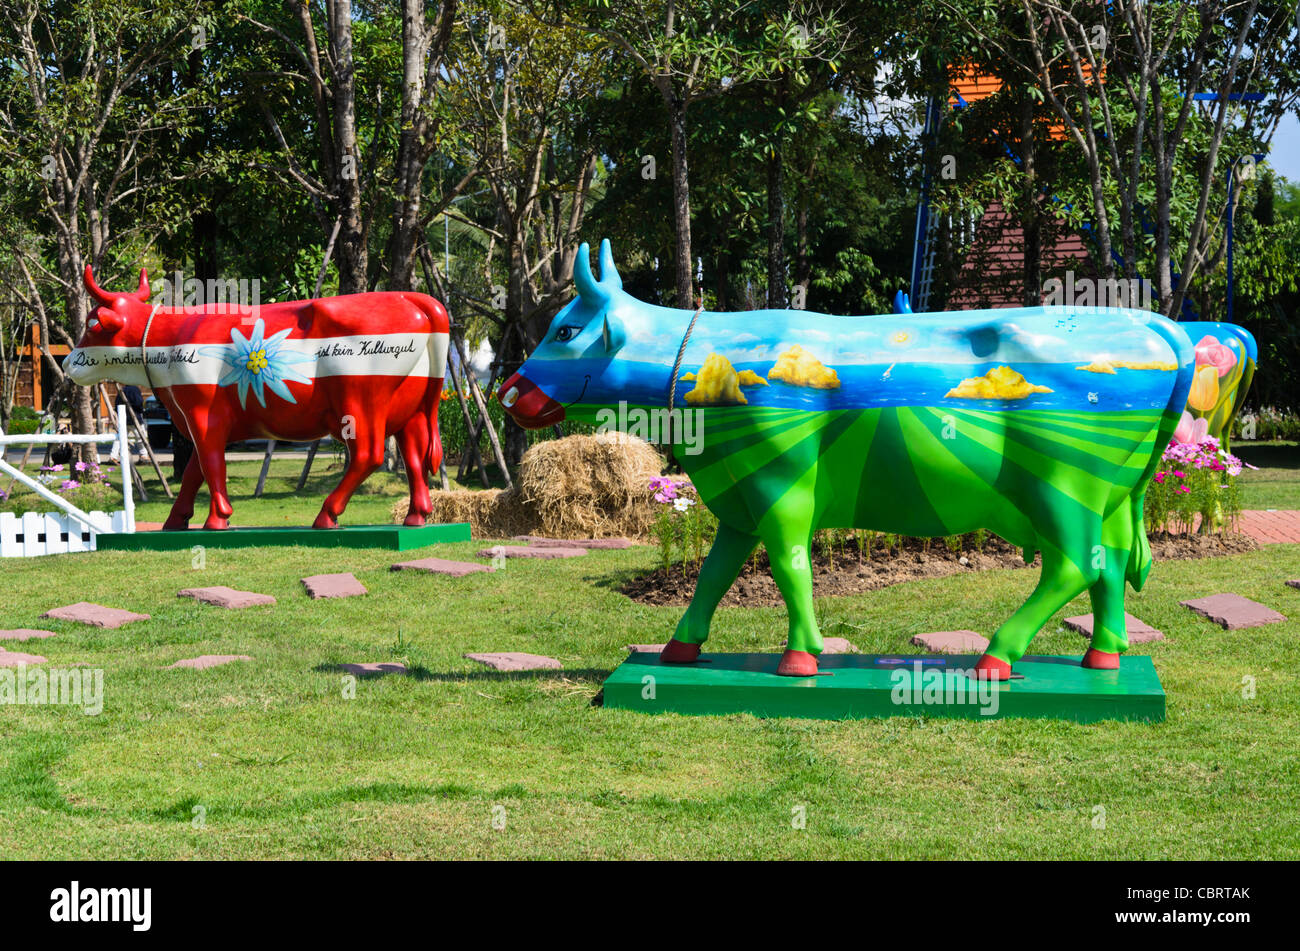 Painted cow statues with various designs at Dutch exhibit at Royal Flora Ratchaphruek in Chiang Mai Thailand - Stock Image